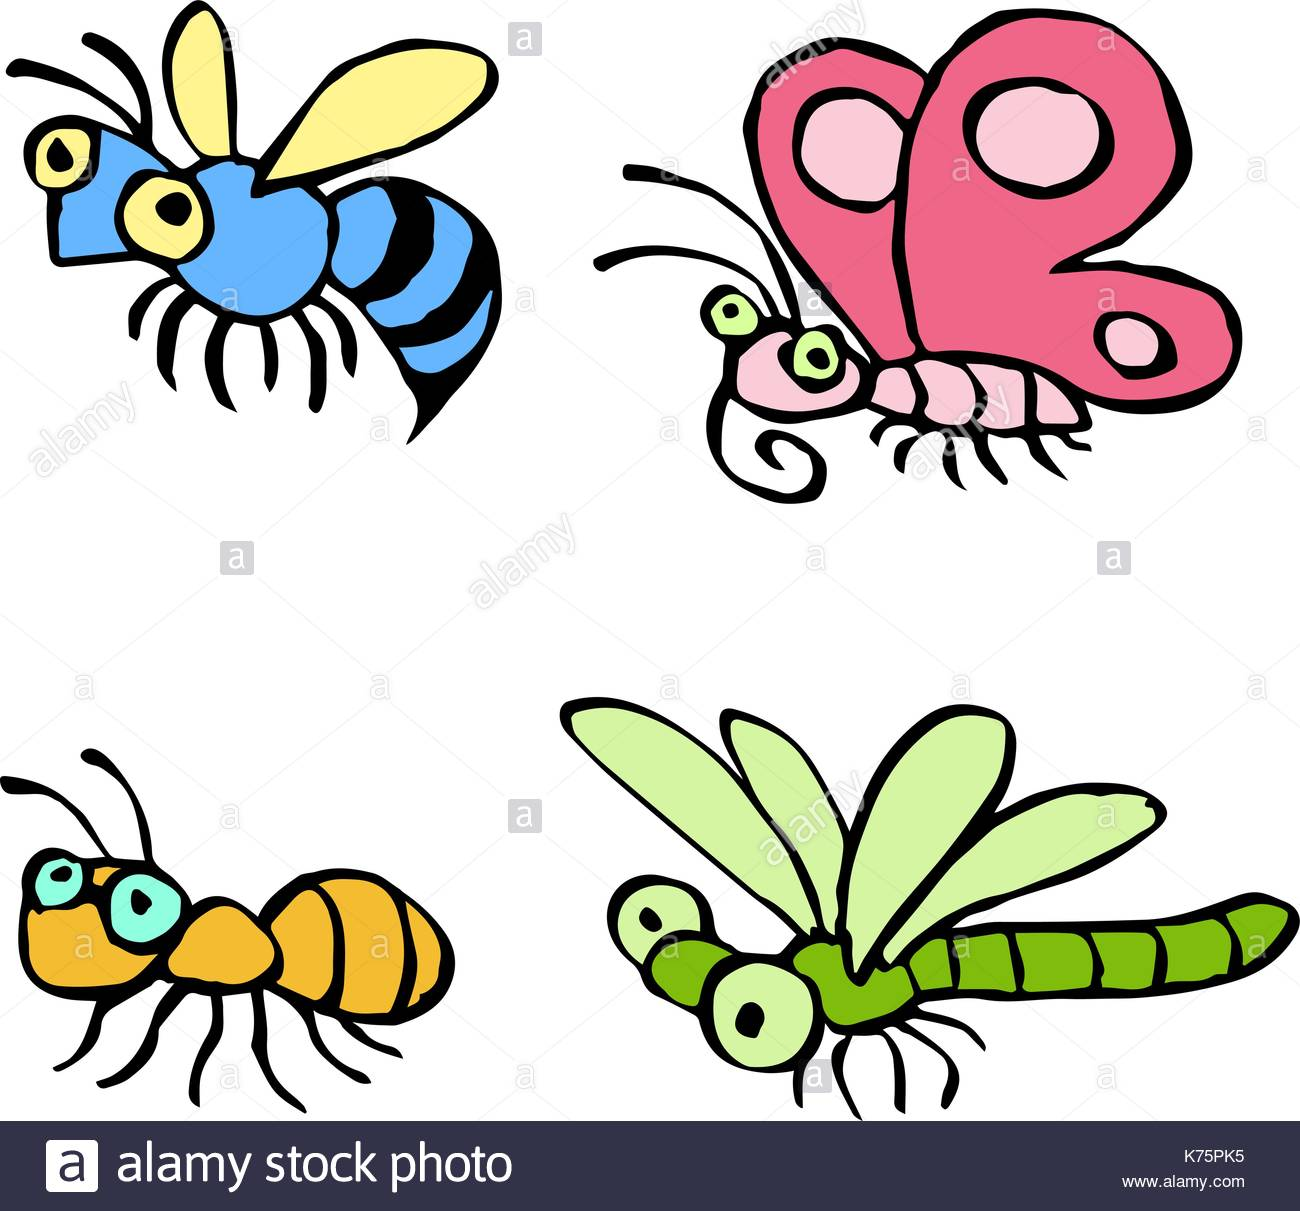 1300x1211 Insect Clip Art Stock Photos Amp Insect Clip Art Stock Images